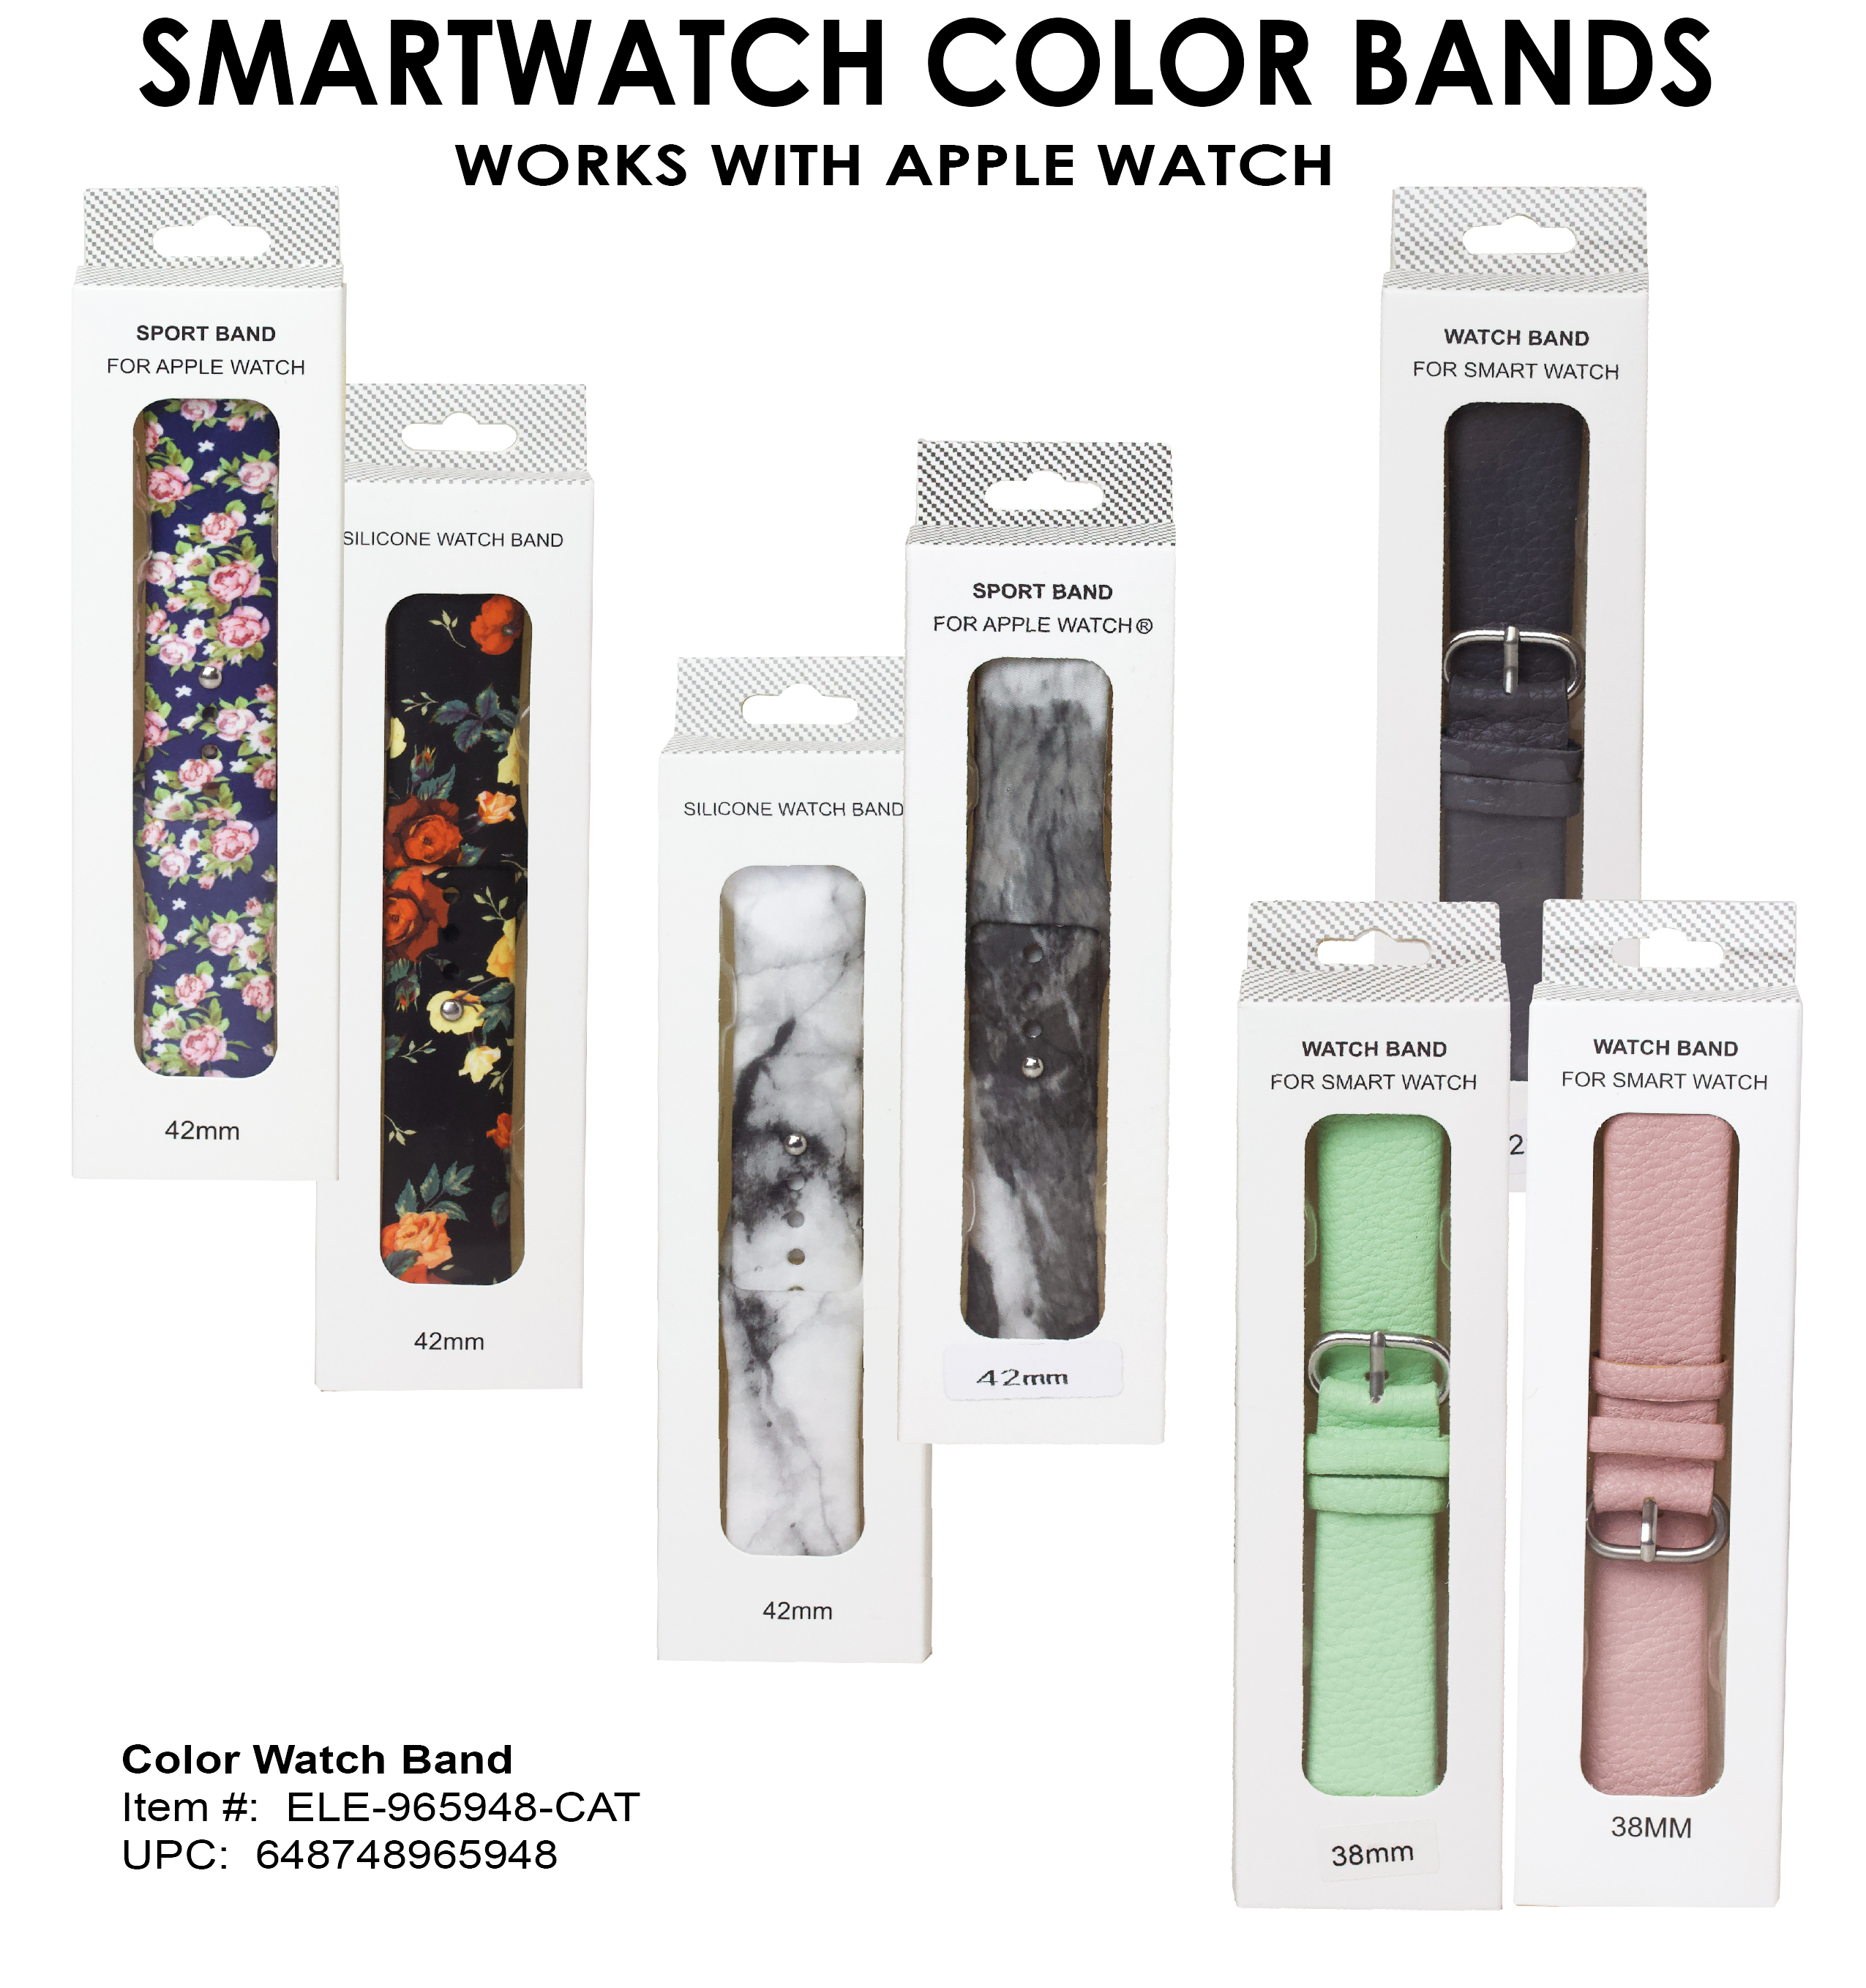 1-Color Watch Bands SNIToday